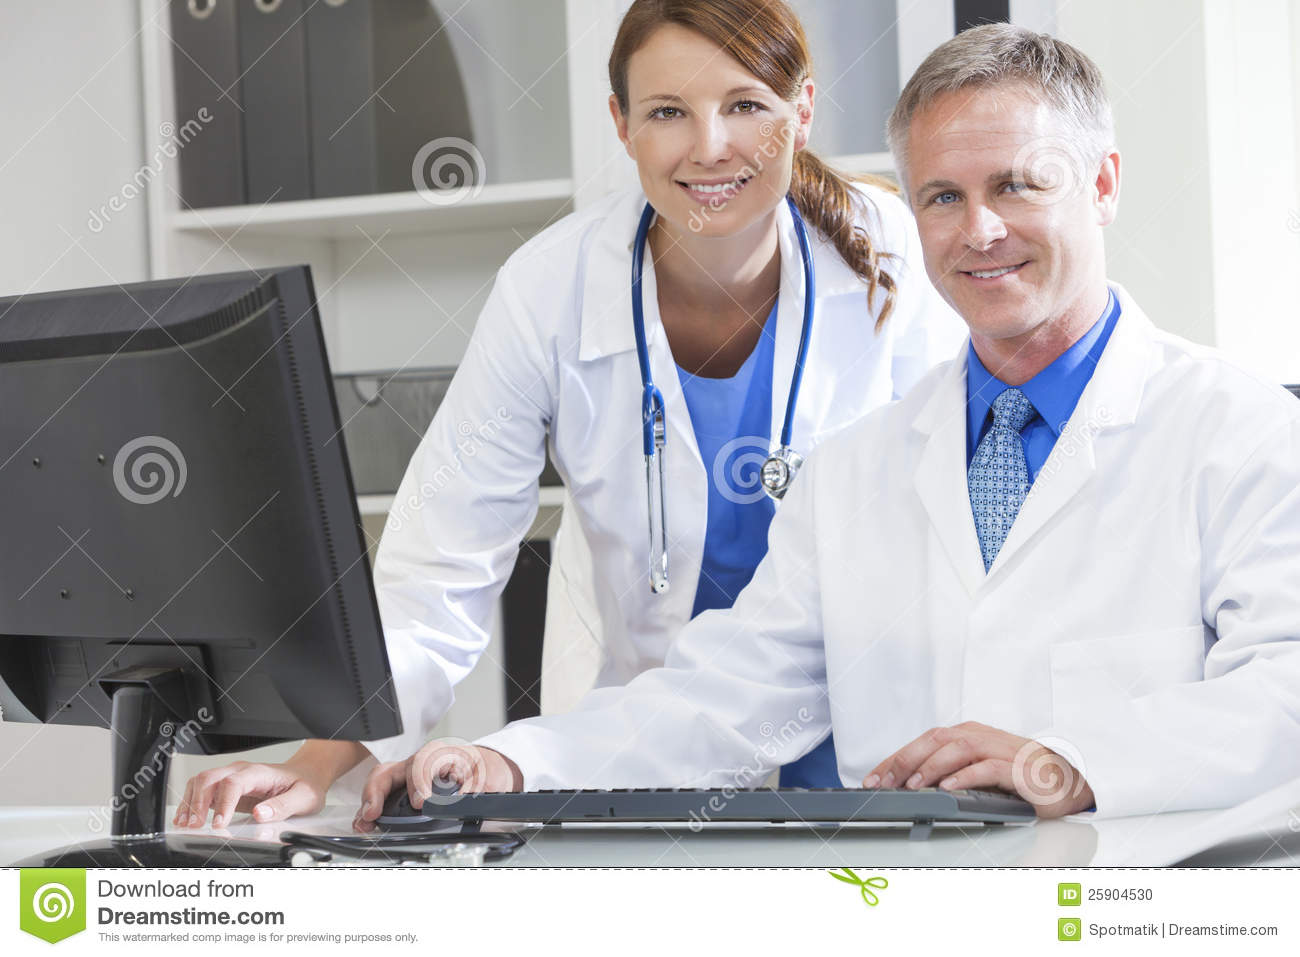 Computer in hospital clipart svg transparent Male Female Hospital Doctors Using Computer Royalty Free Stock ... svg transparent